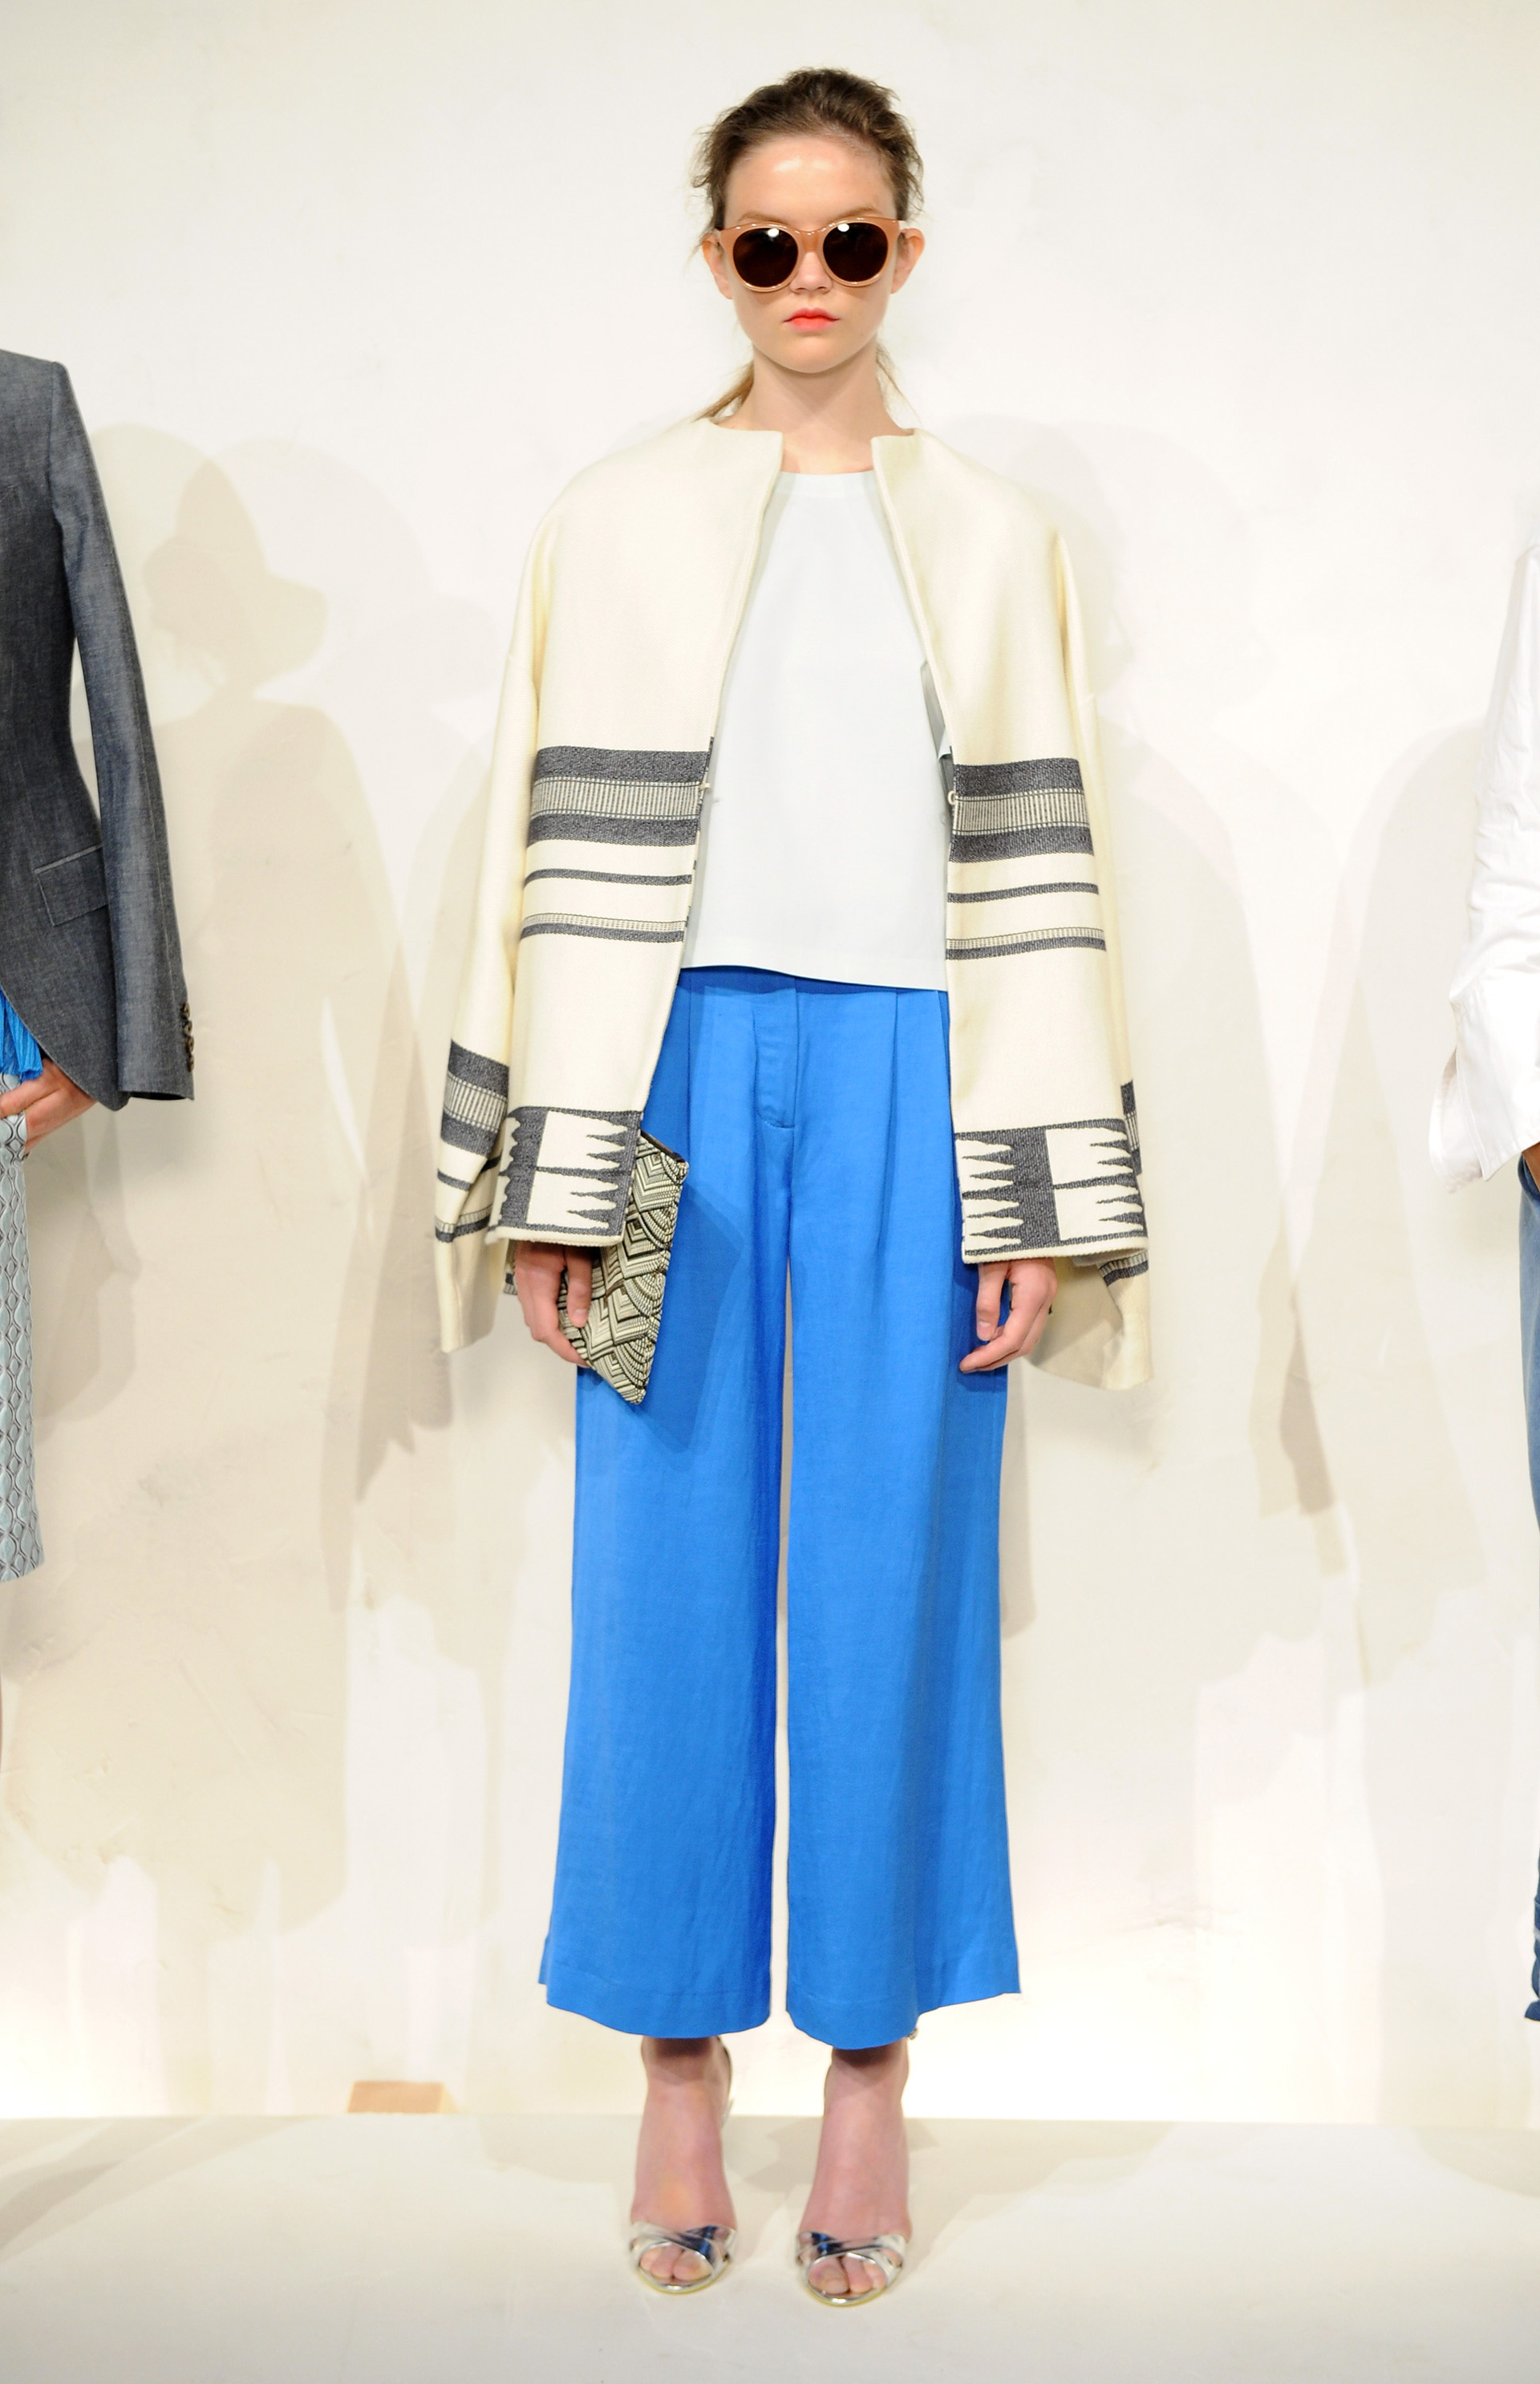 2015 J.Crew collection pieces 2